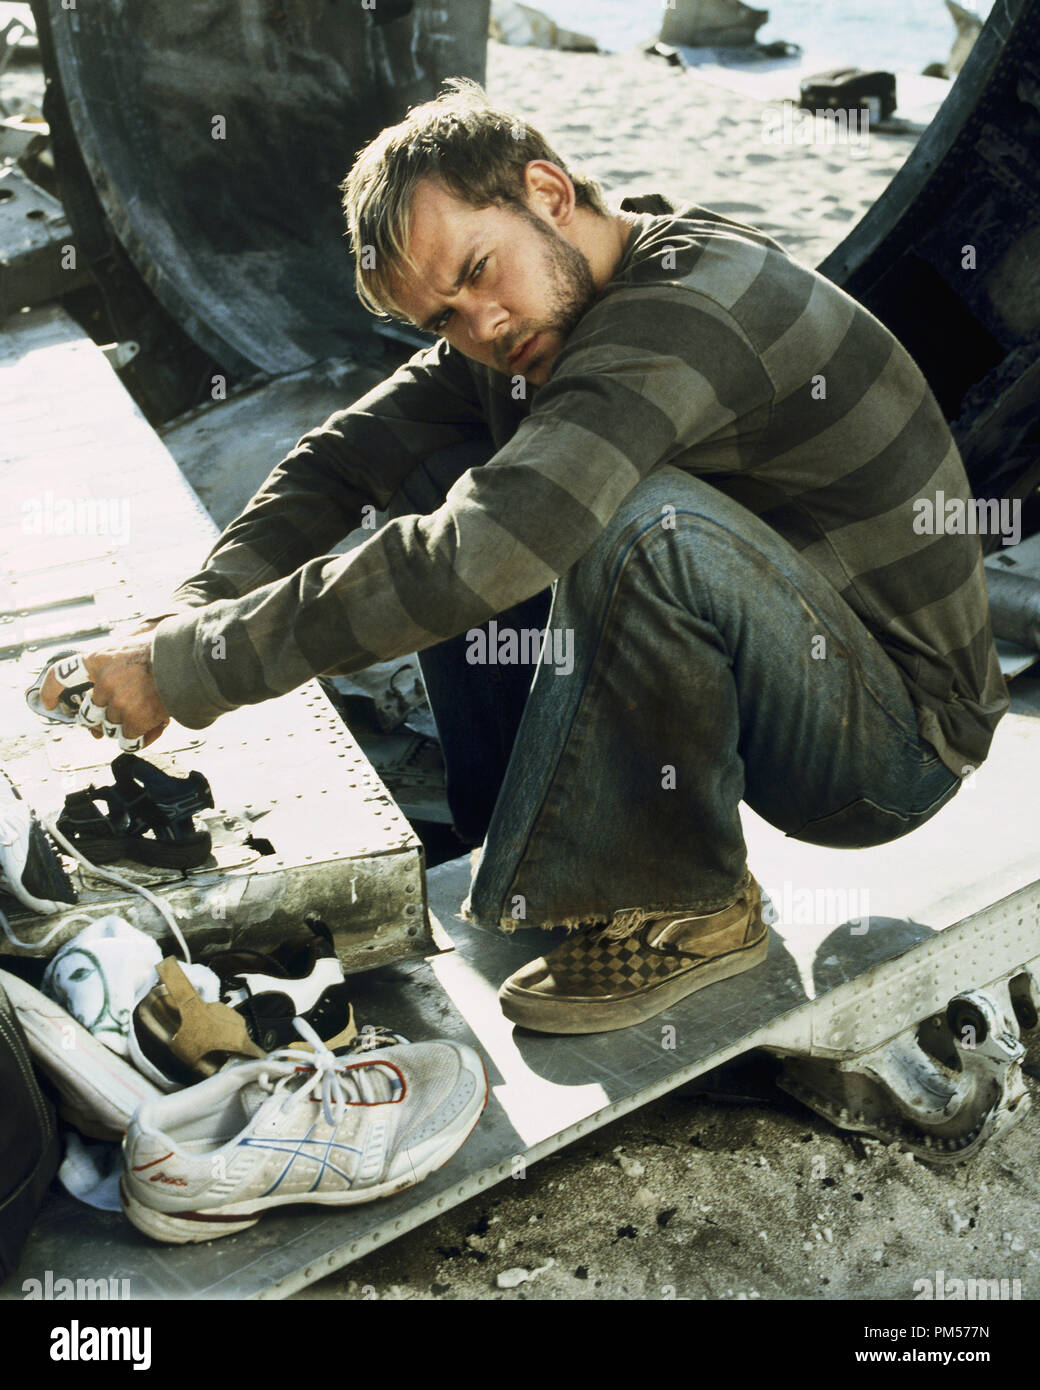 Studio Publicity Still from 'Lost' Dominic Monaghan 2004   File Reference # 307351590THA  For Editorial Use Only -  All Rights Reserved - Stock Image